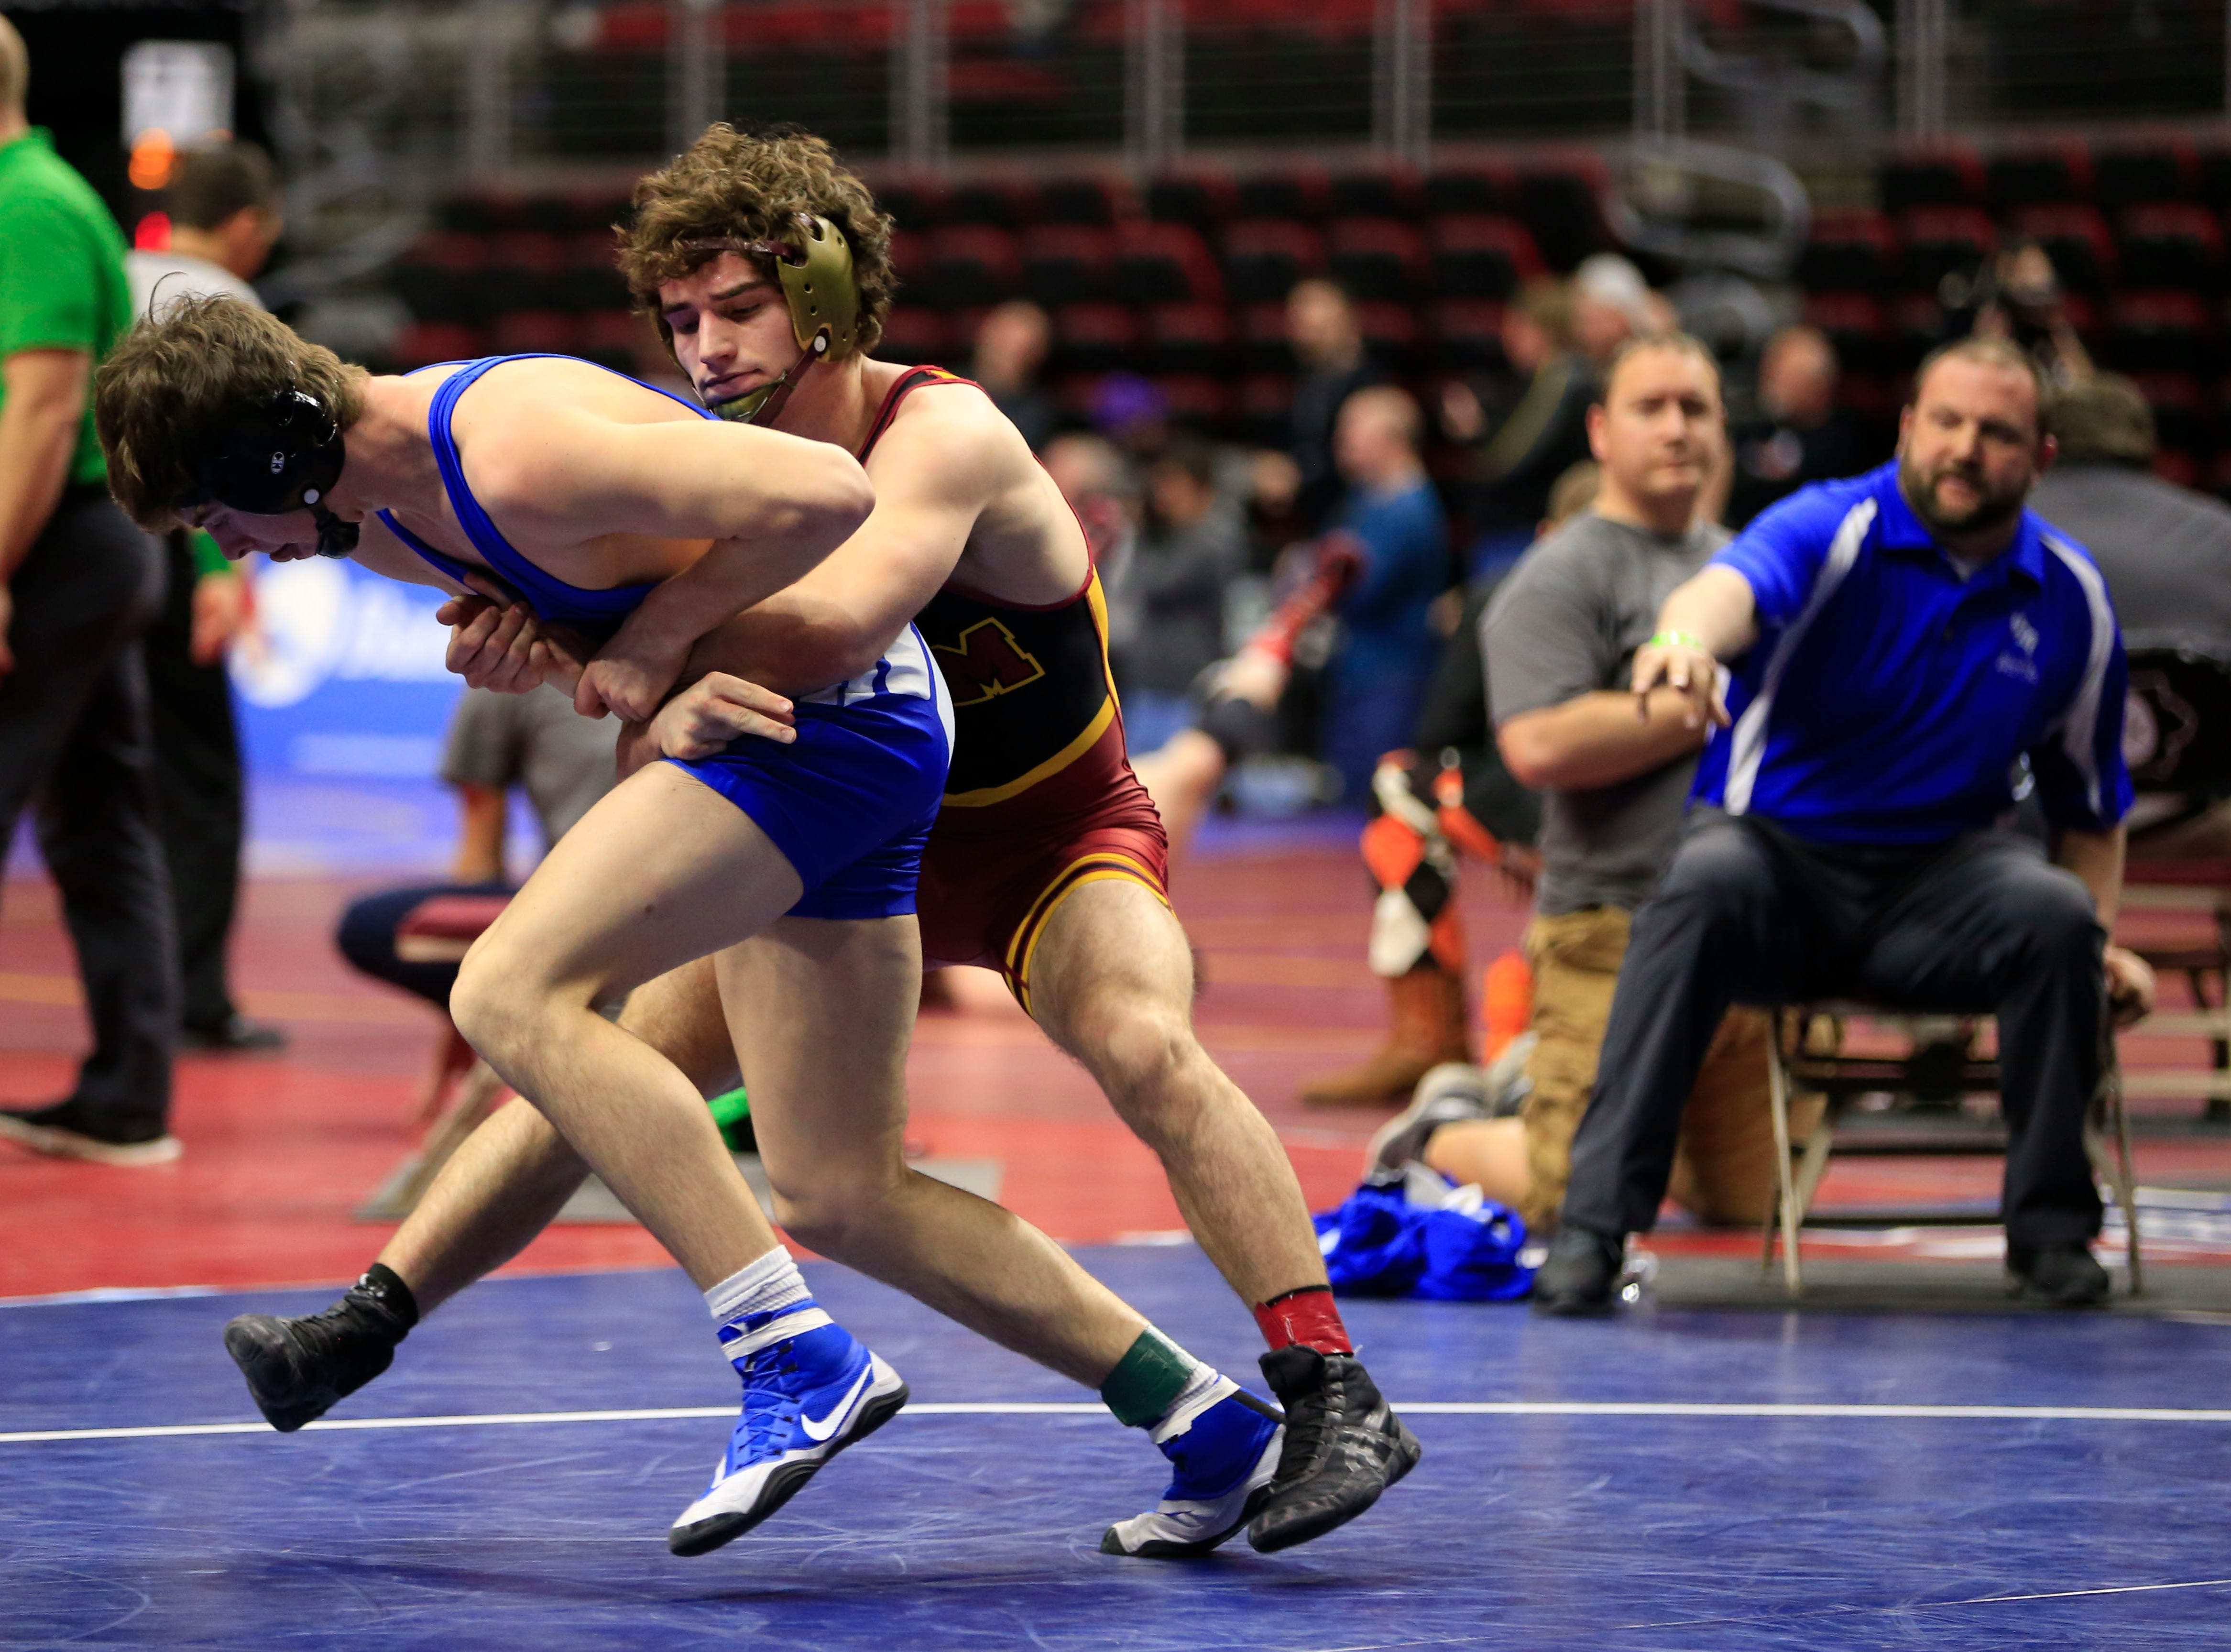 Wes Cummings of PCM, Monroe defeats Caleb Swalla of Van Meter-Earlham during a 160 Lb 2A quarterfinal match at the state wrestling tournament Friday, Feb. 15, 2019.